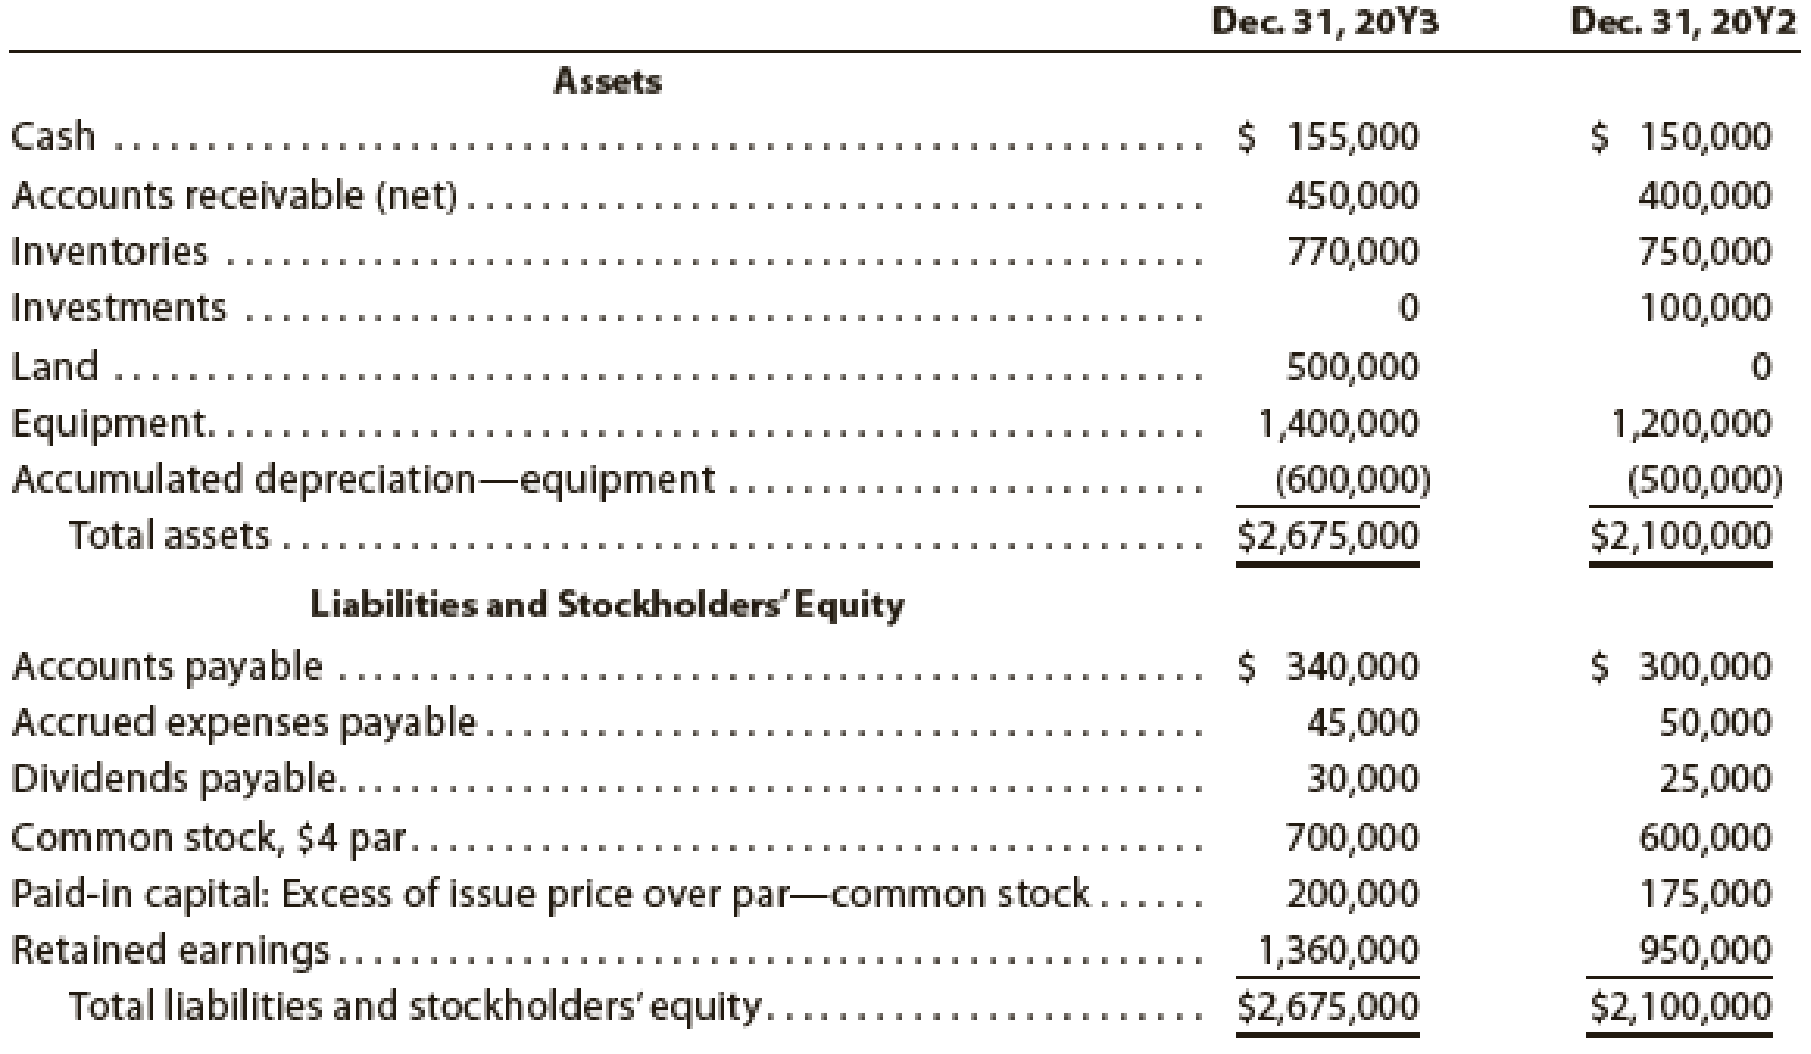 Chapter 16, Problem 1PA, The comparative balance sheet of Navaria Inc. for December 31, 20Y3 and 20Y2, is shown as follows: